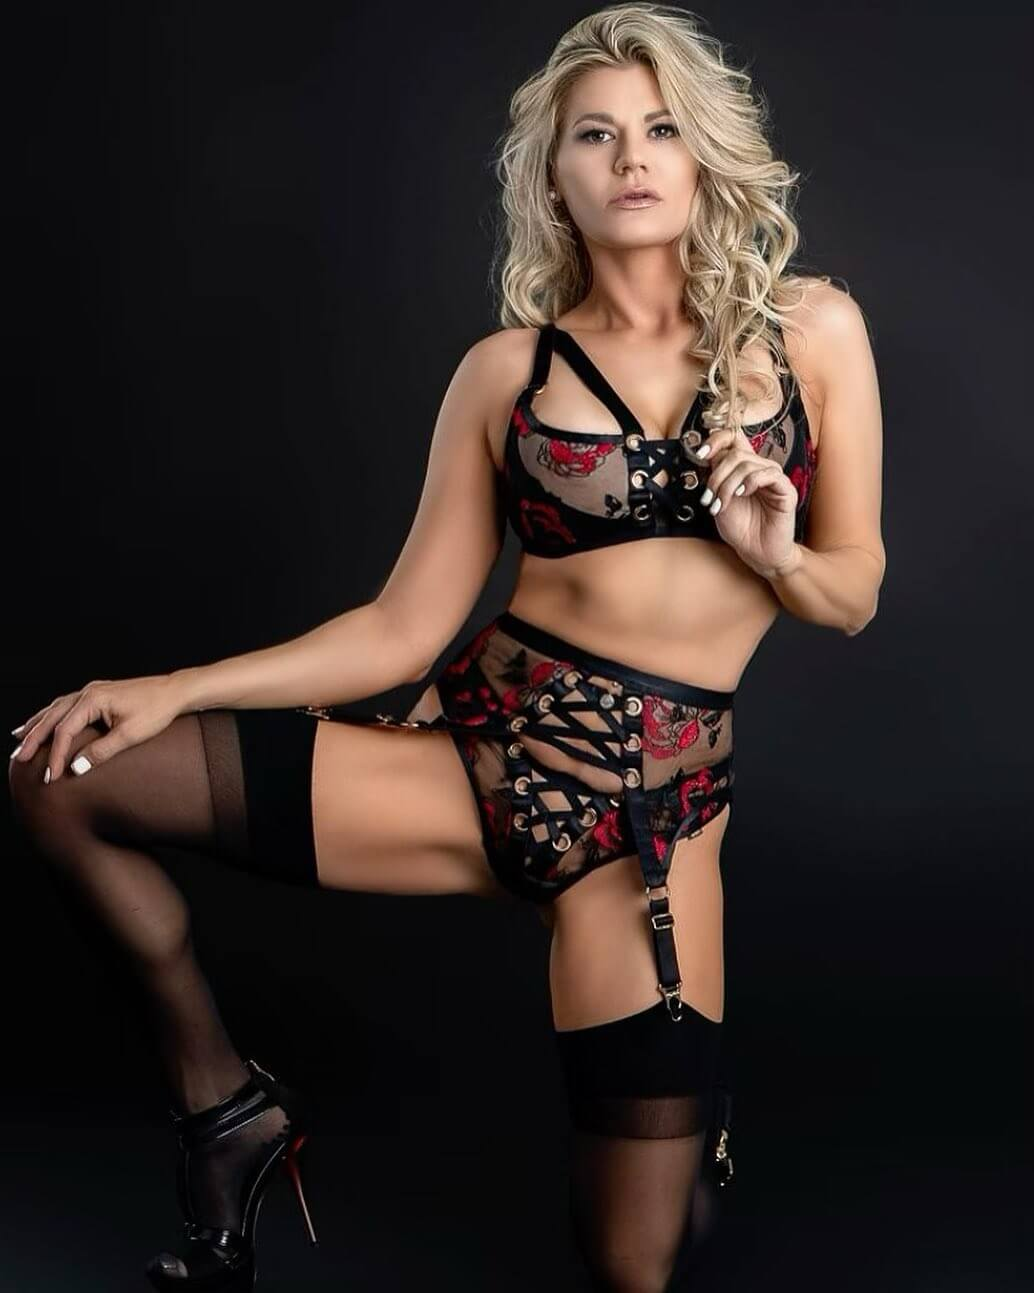 Beautiful smiling Texas blonde model Linzy Austin @tx_girl_next_door wearing black lingerie with black nylon stockings and high heels kneeled holding one leg up showing her hot body and banties